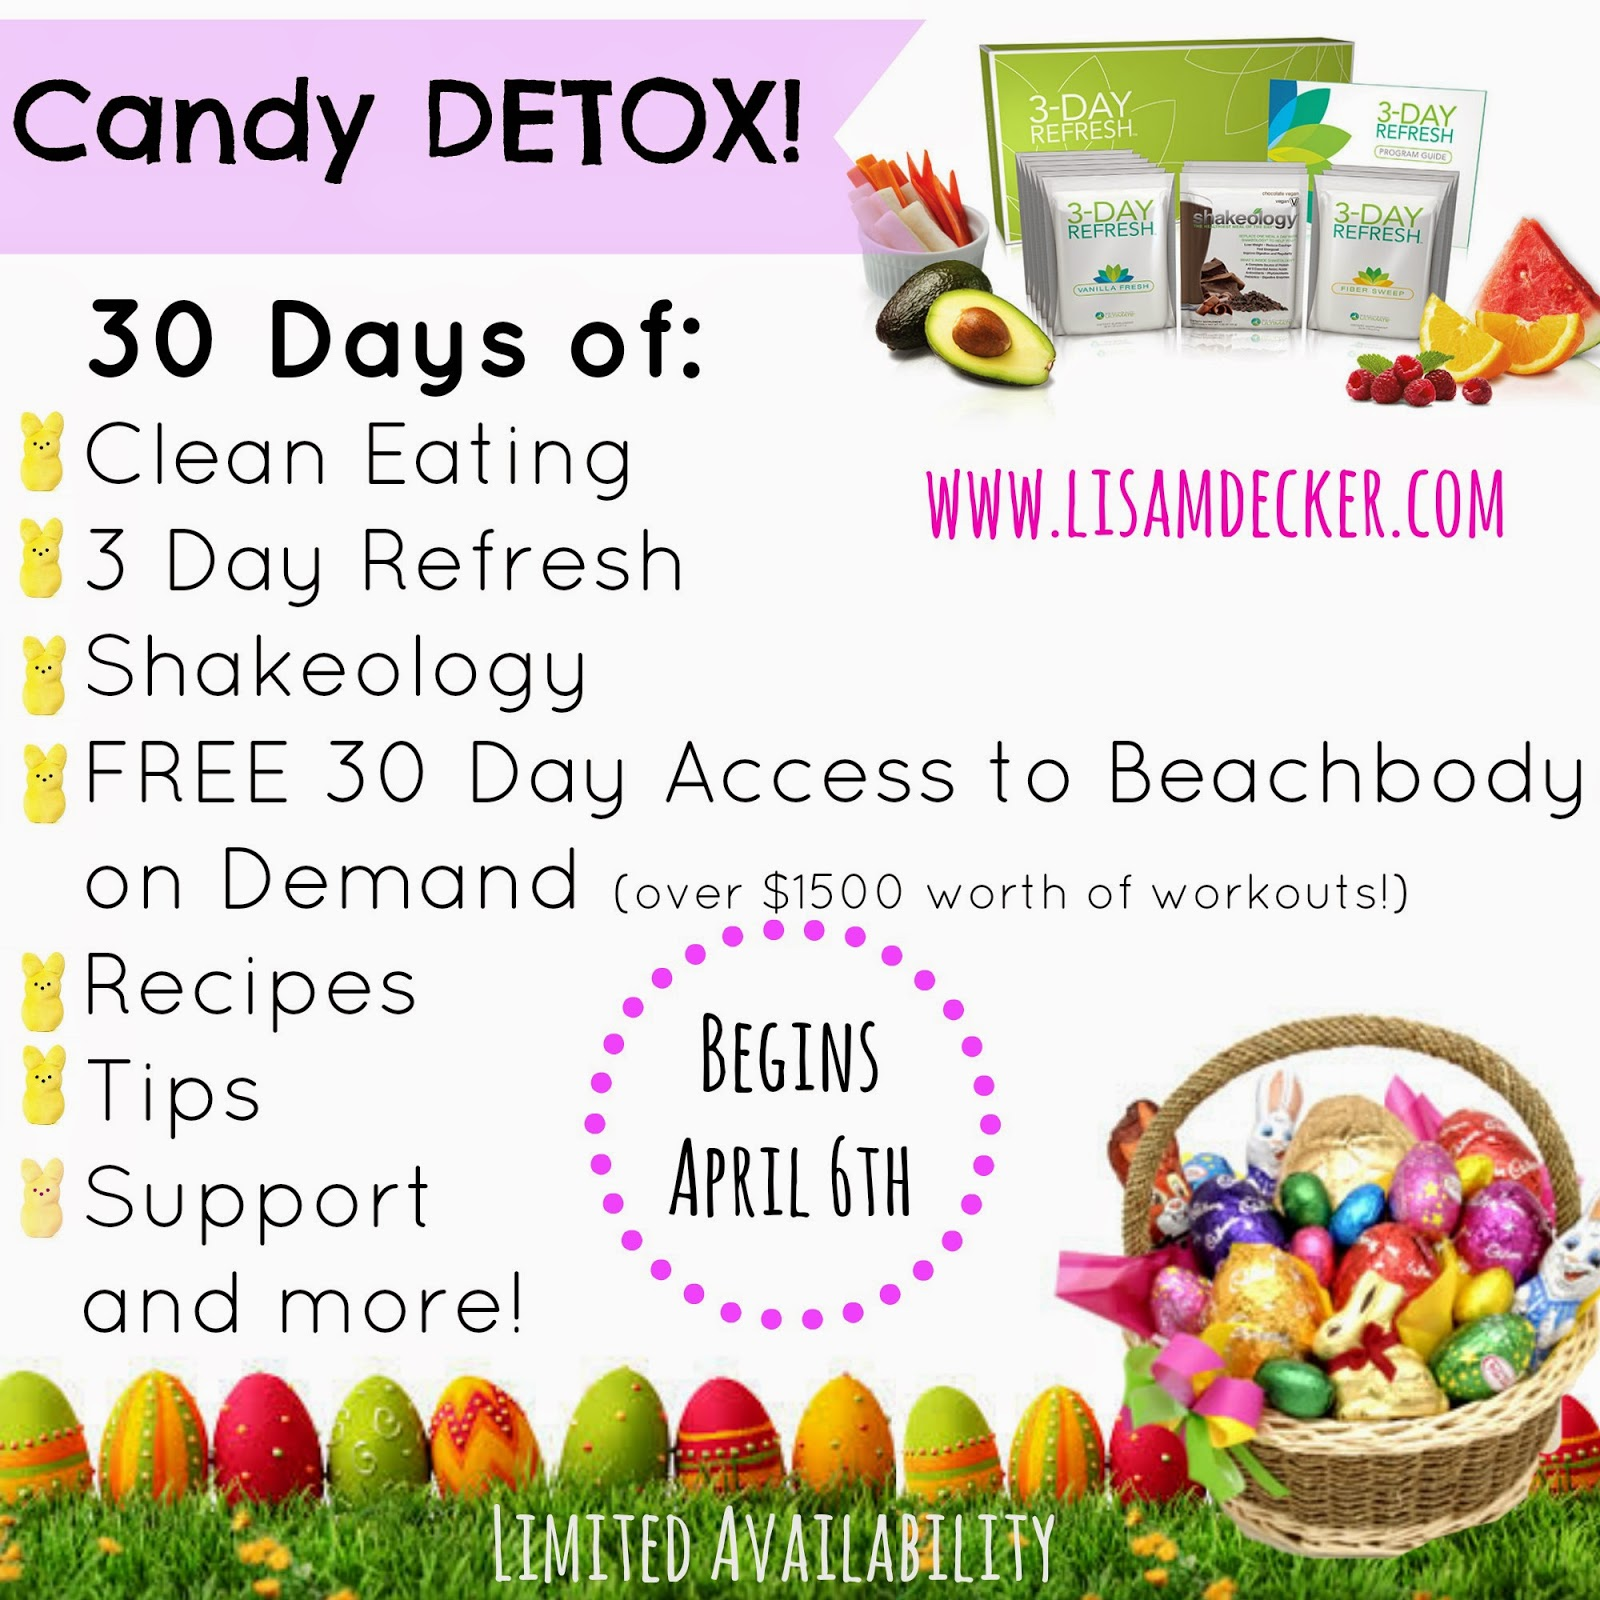 21 Day Fix Extreme, 21 Day Fix, 21 Day Fix Extreme Meal Plan, 21 Day Fix Meal Plan, Shakeology, Clean Eating, Meal Planning, Healthy Recipes, 21 Day Fix Snacks, Detox, Cleanse, 3 Day Refresh